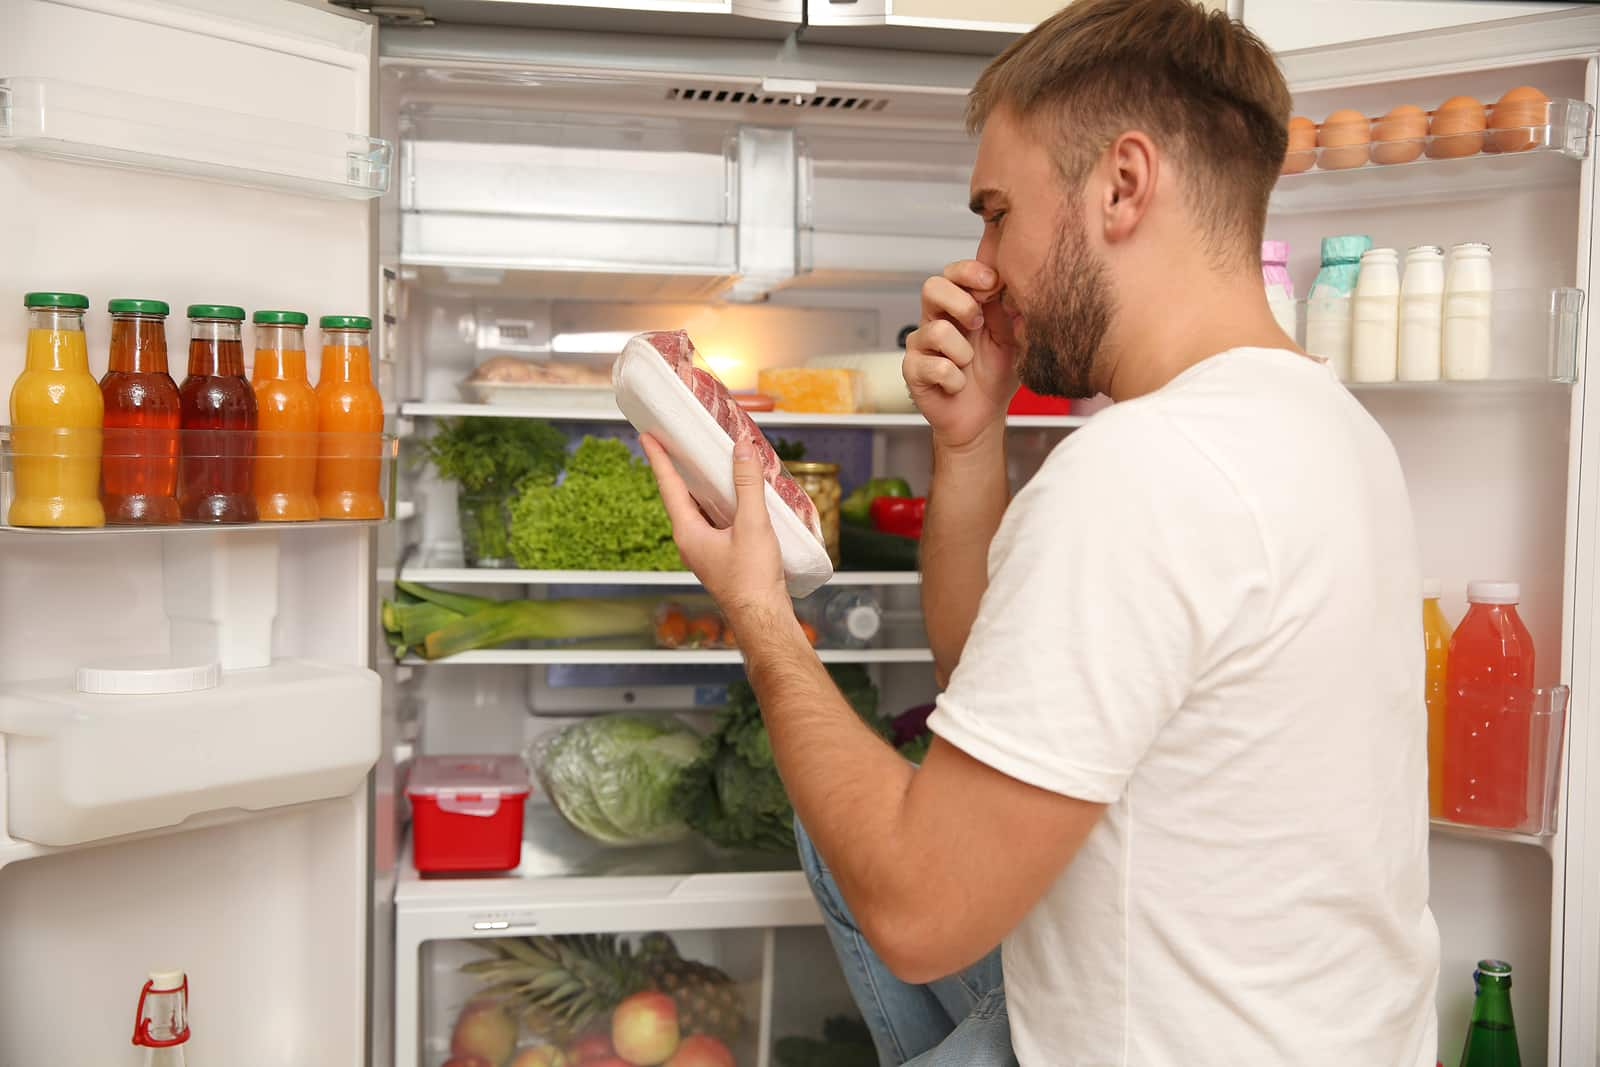 bad smelling meat near refrigerator in kitchen